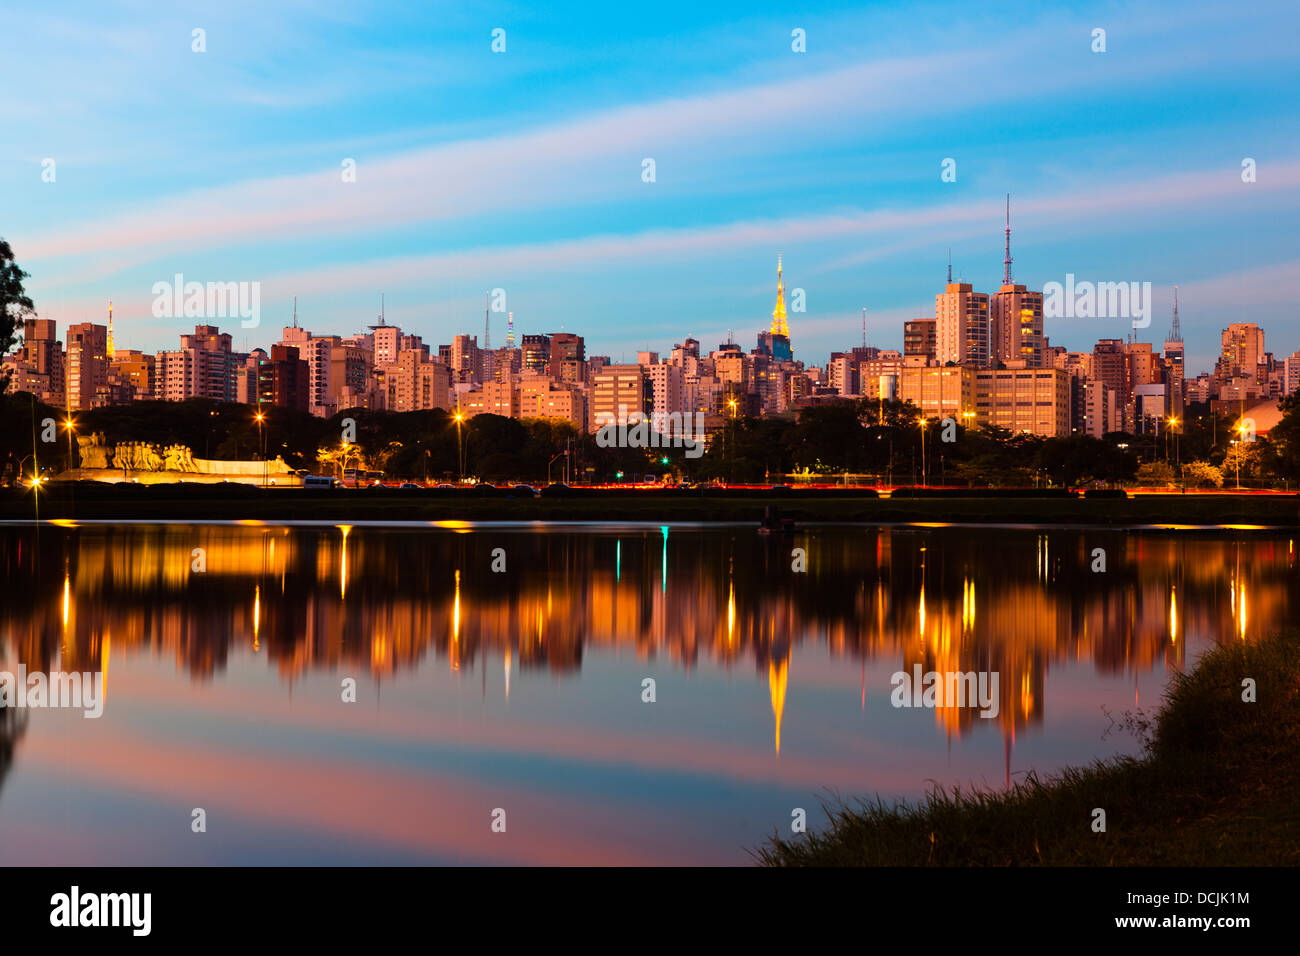 Sao Paulo skyline at sunset seen from Ibirapuera Park ( Parque Ibirapuera) a major urban park of the city, Brazil. - Stock Image